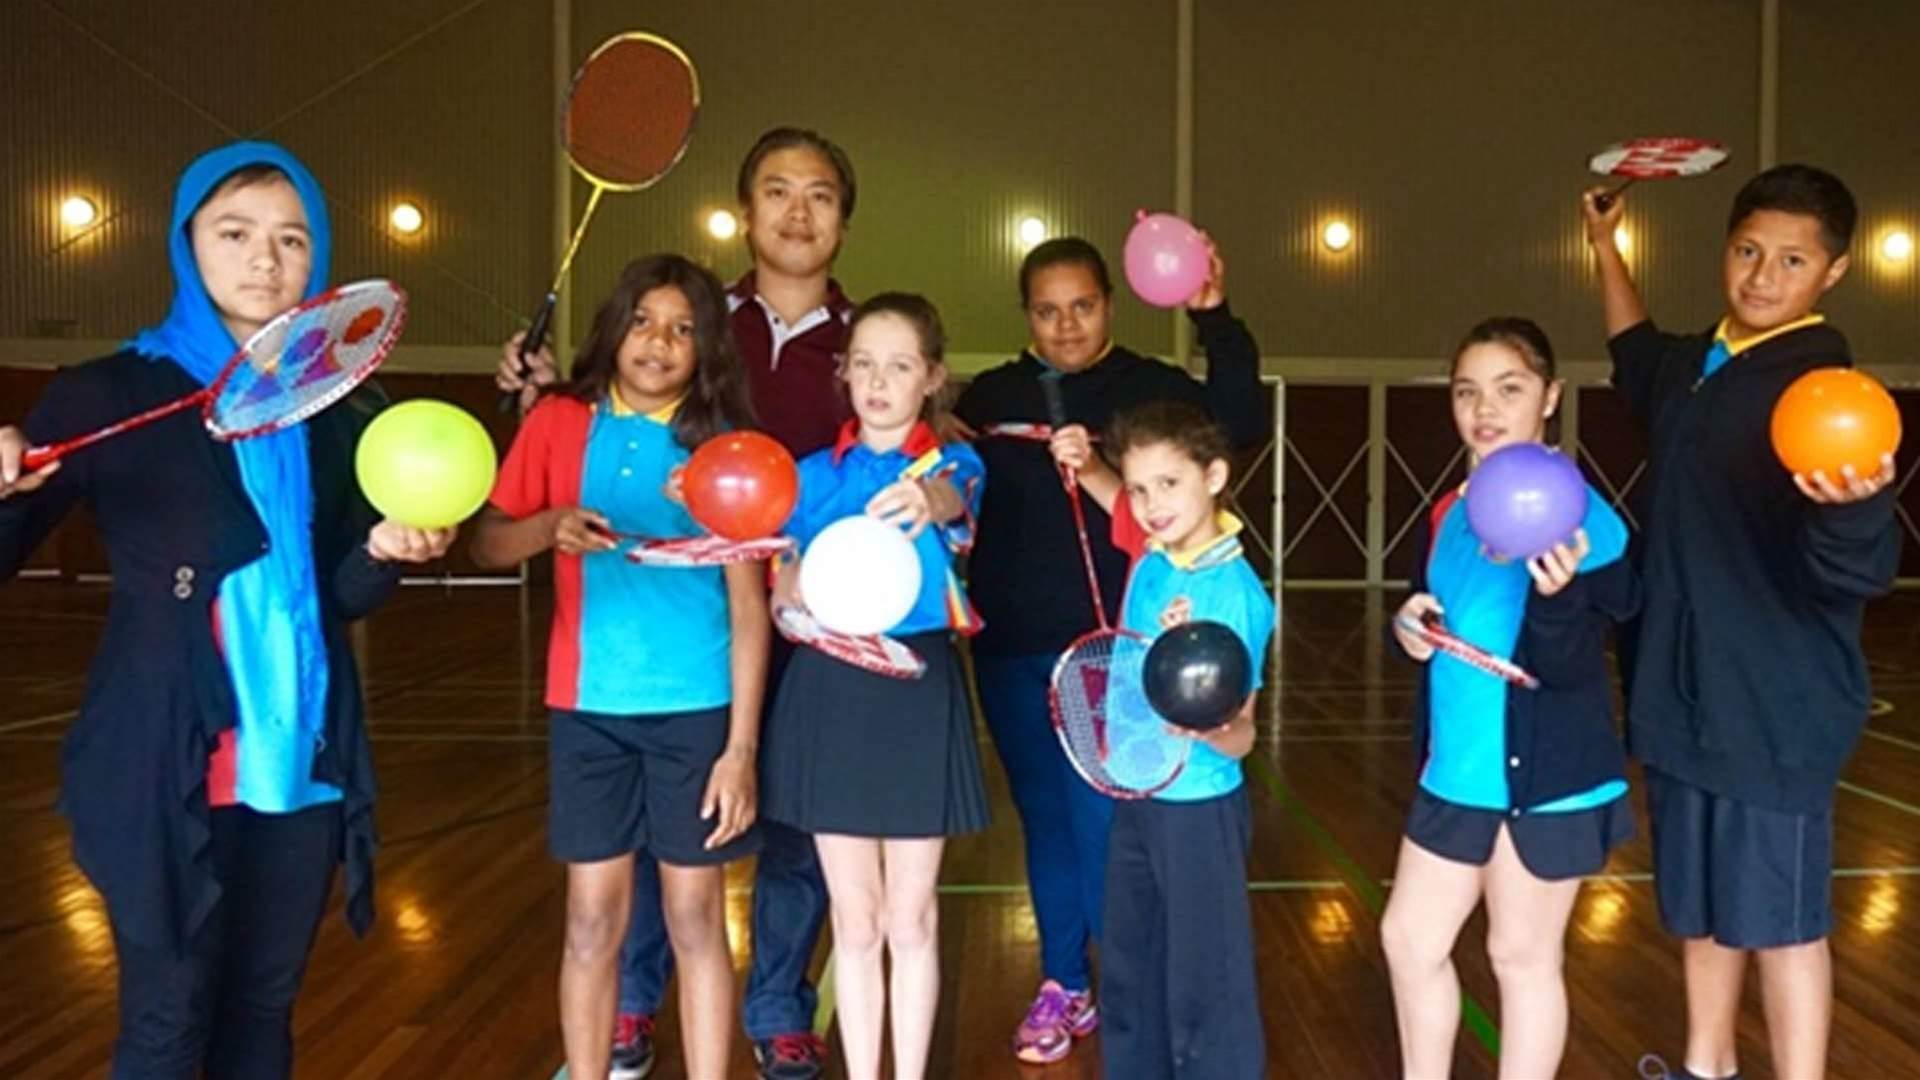 Badminton: Catching on fast